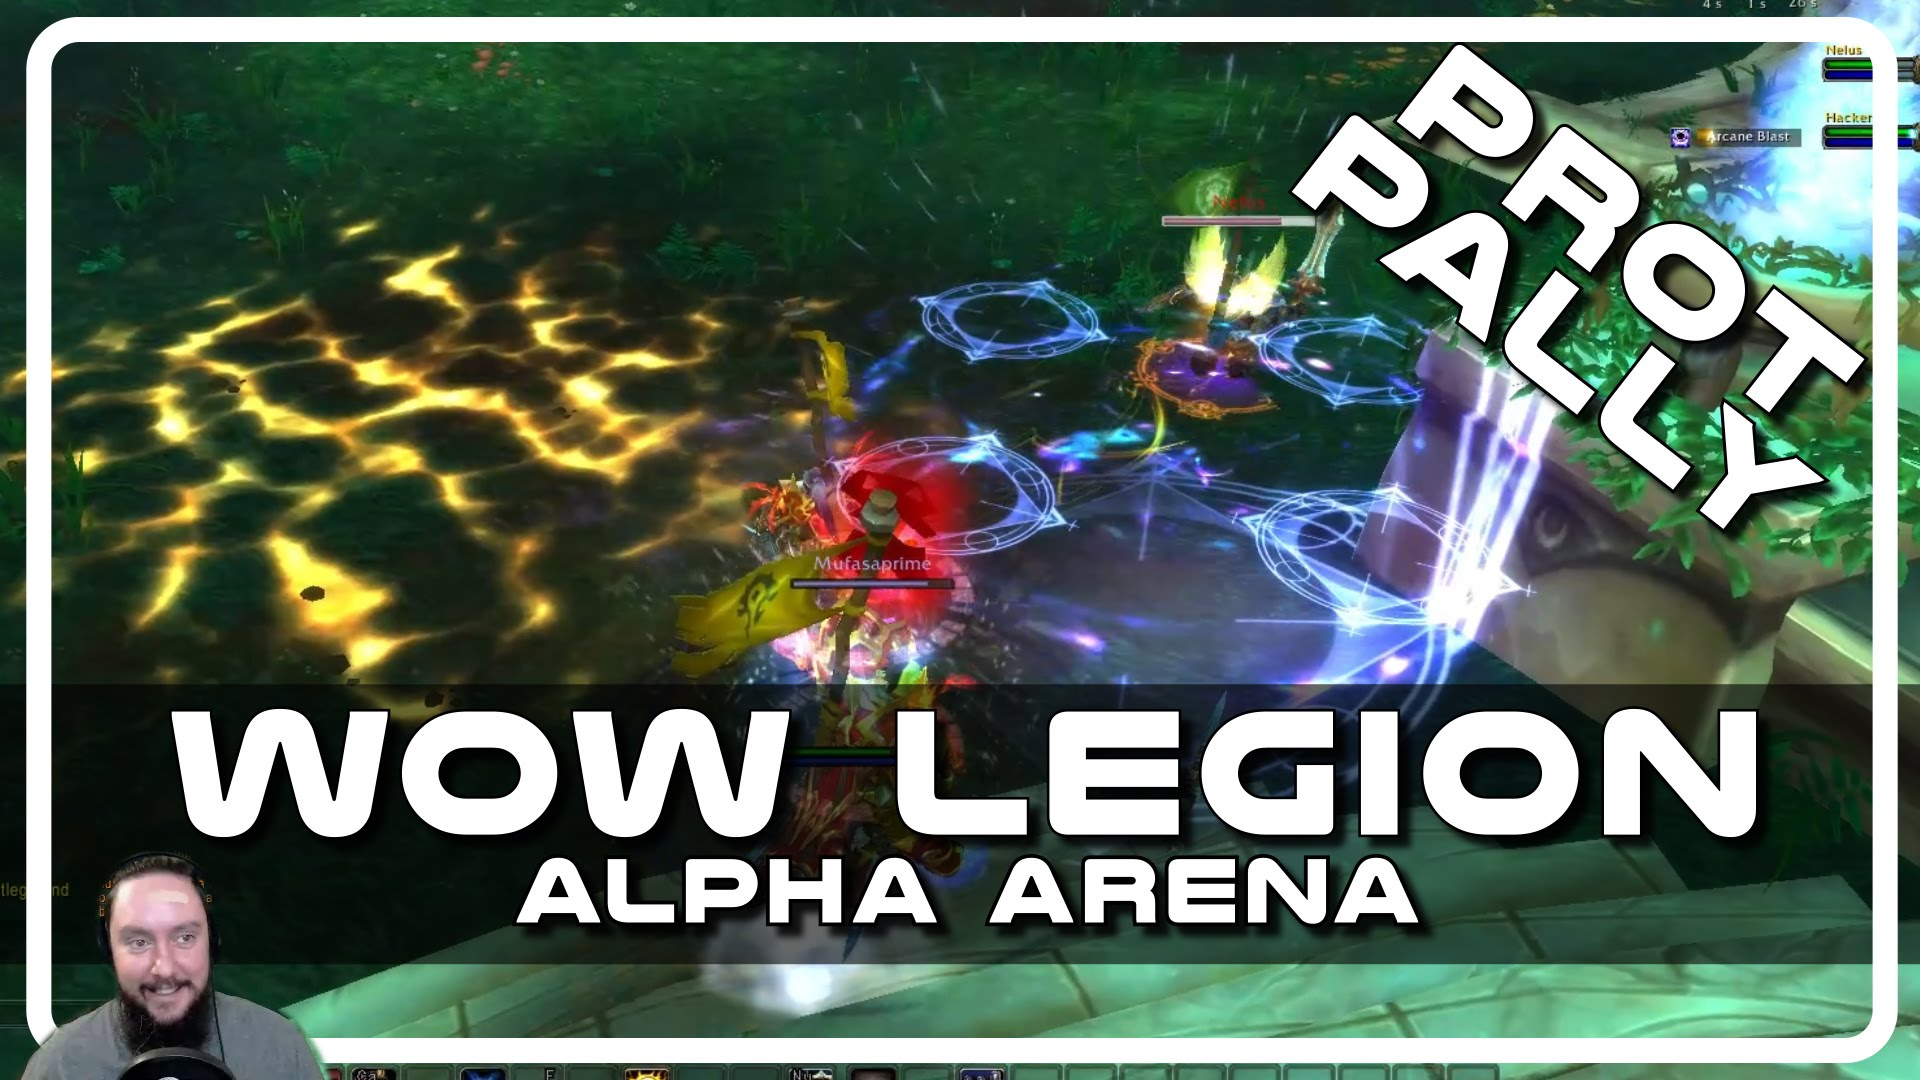 WoW Legion Alpha PvP – Prot Paladin Arena with Psynaps & MufasaPrime Deathknight #2 (PvP Gameplay)